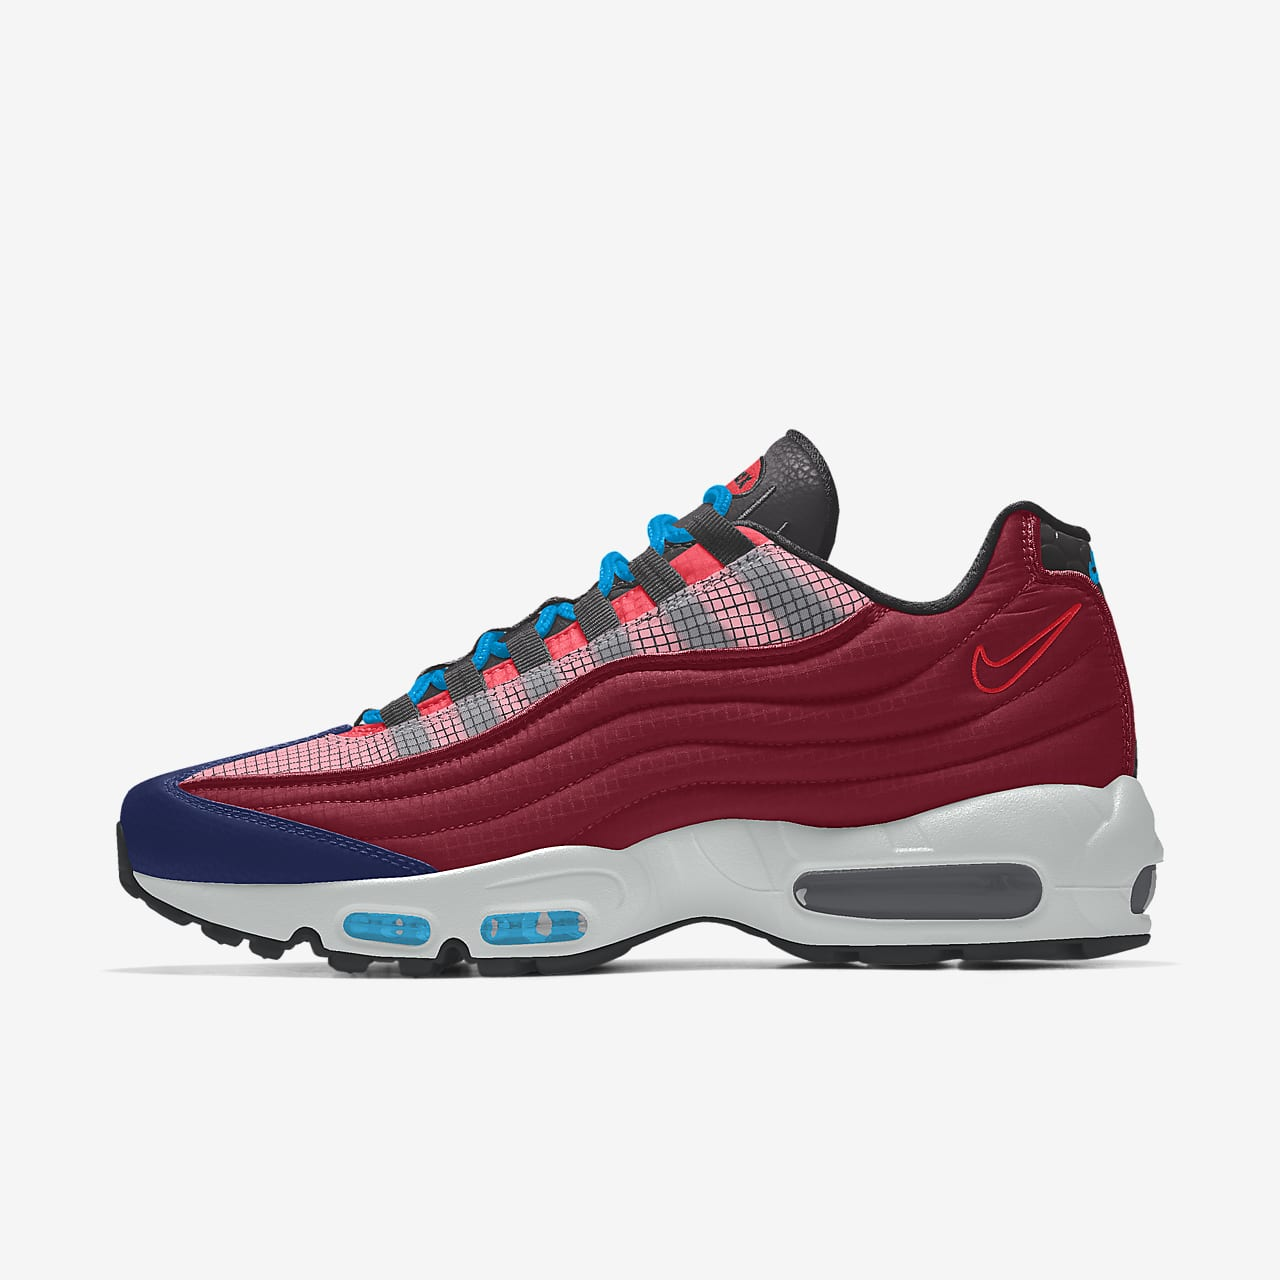 Nike Air Max 95 3M™ By You 專屬訂製鞋款